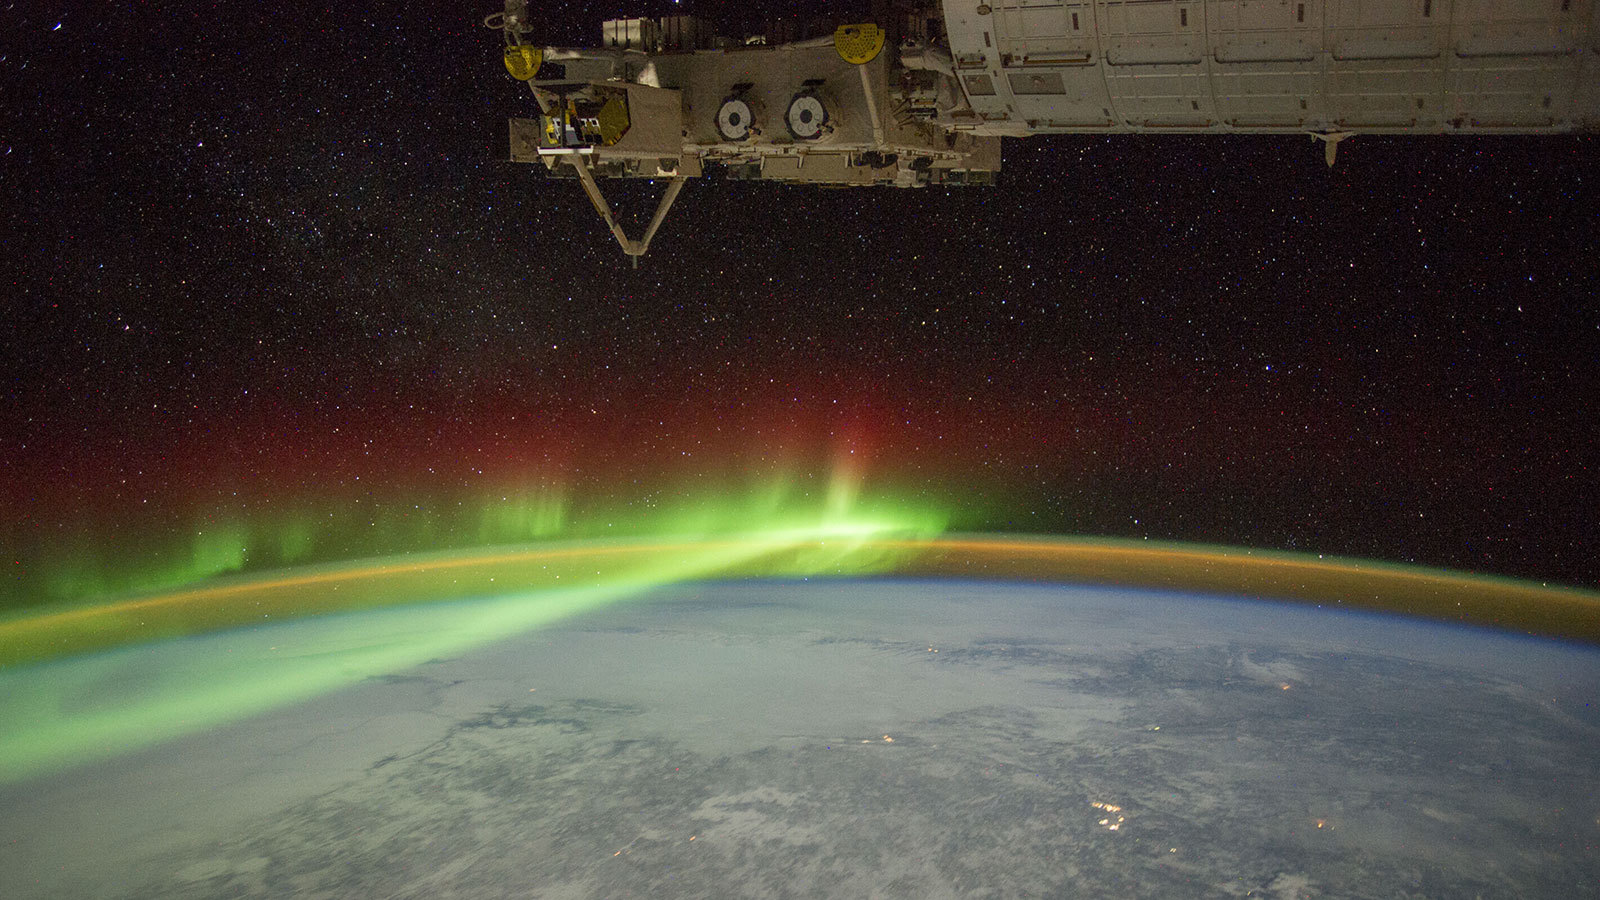 The limb of Earth with glowing auroras and a thin band of atmosphere under part of the International Space Station.